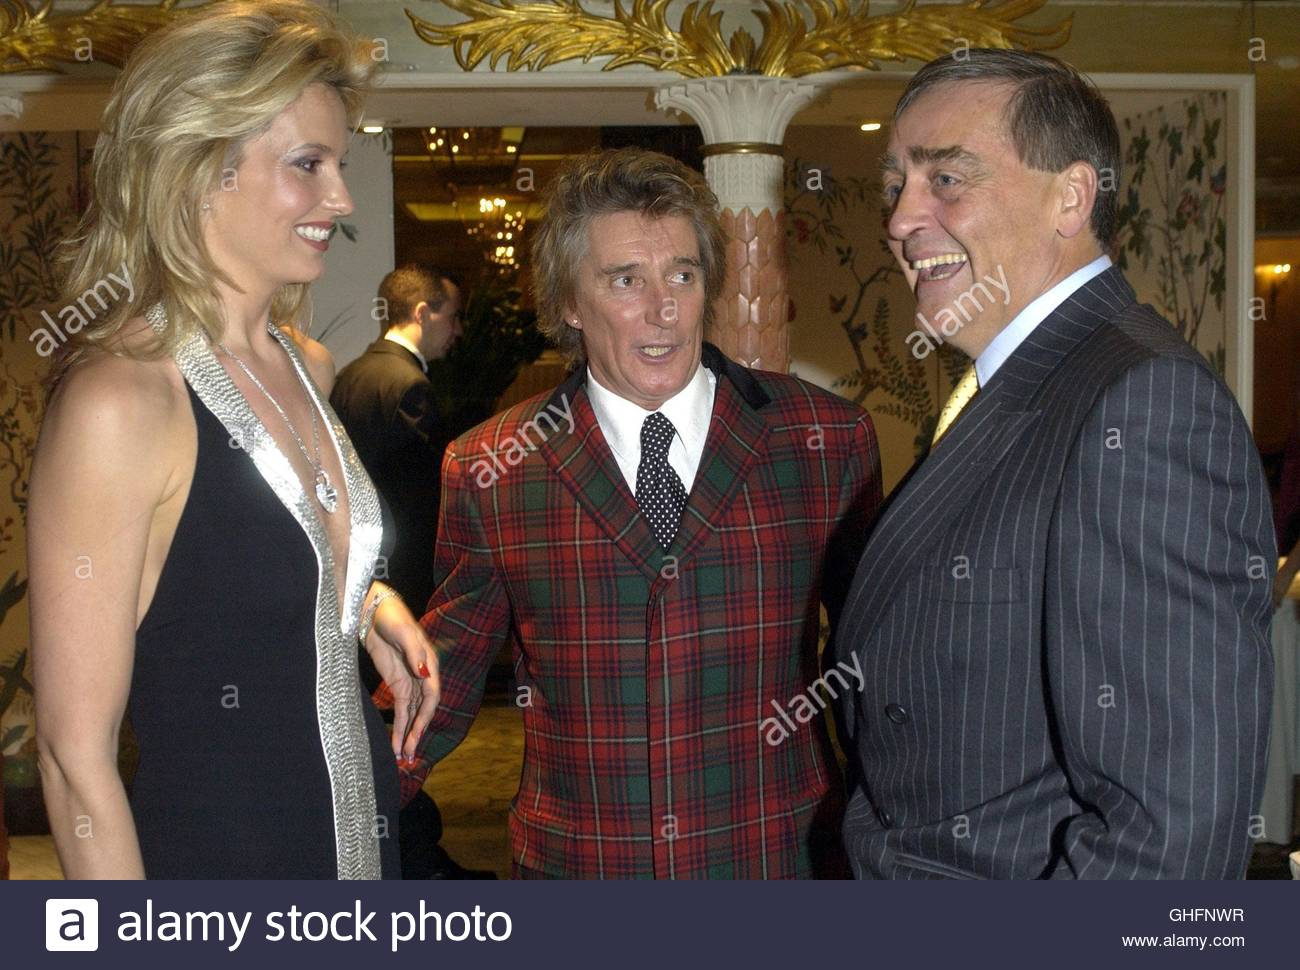 File photo dated 12/10/2004 of Penny Lancaster and Rod Stewart meeting the Duke of Westminster at the Royal National - Stock Image